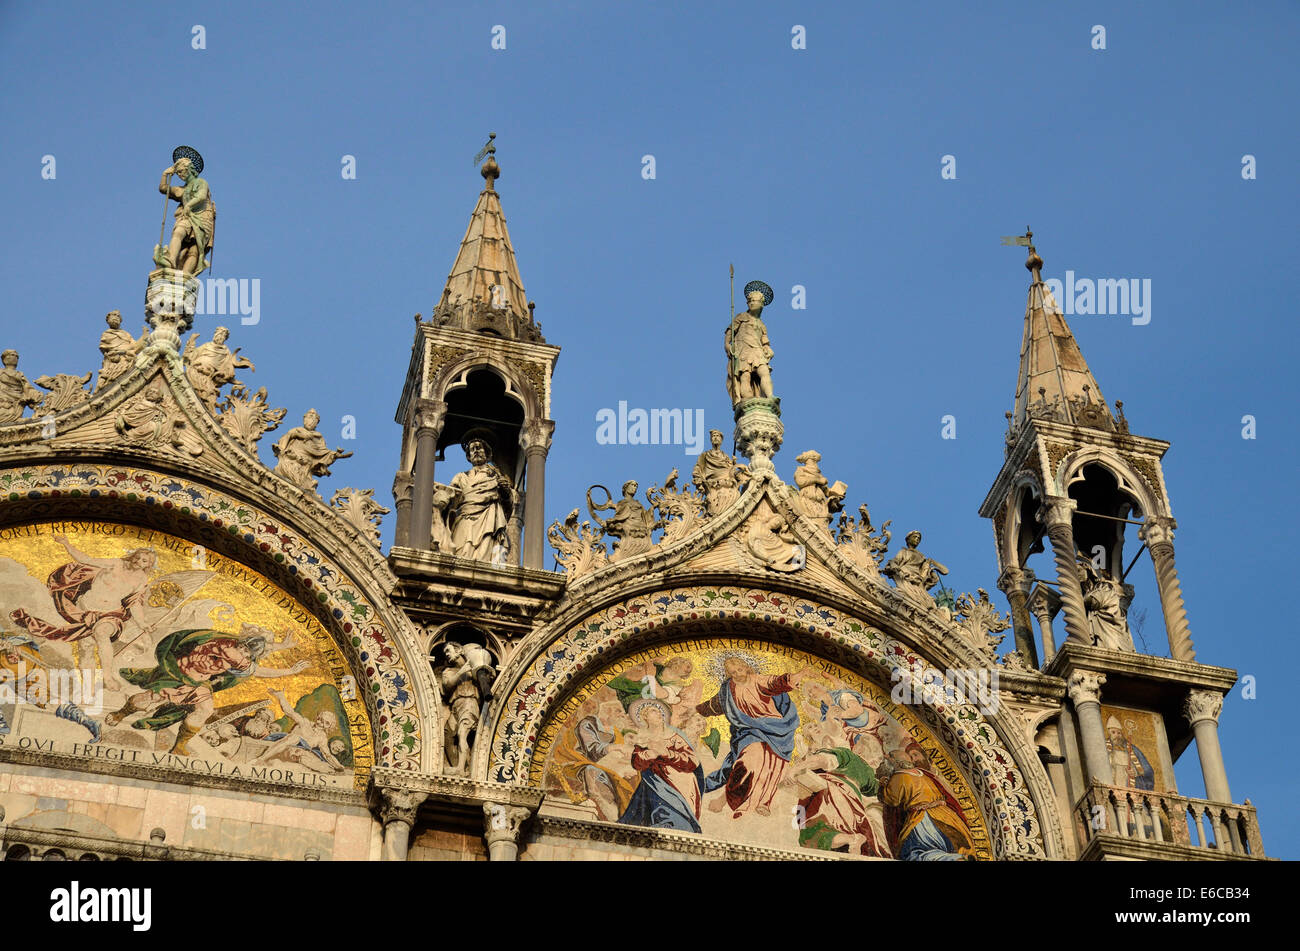 San Marco basilica, Venice, Italy, Europe - detail of the architecture - Stock Image